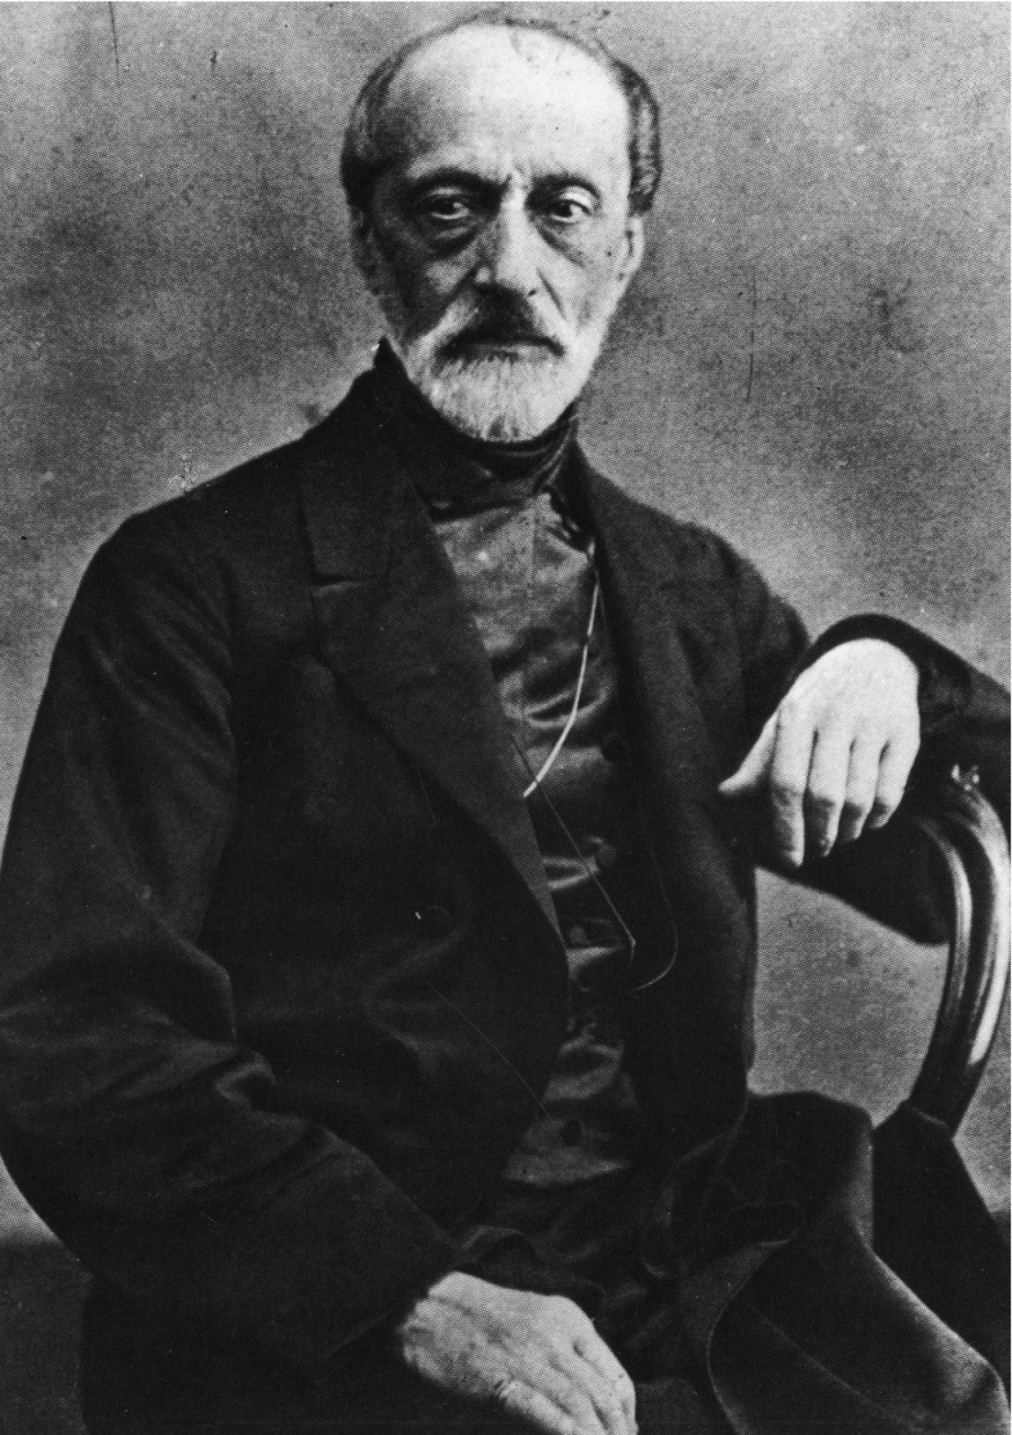 Republican and Progressive Pioneer: Giuseppe Mazzini's Political Thought and his influence on President Woodrow Wilson